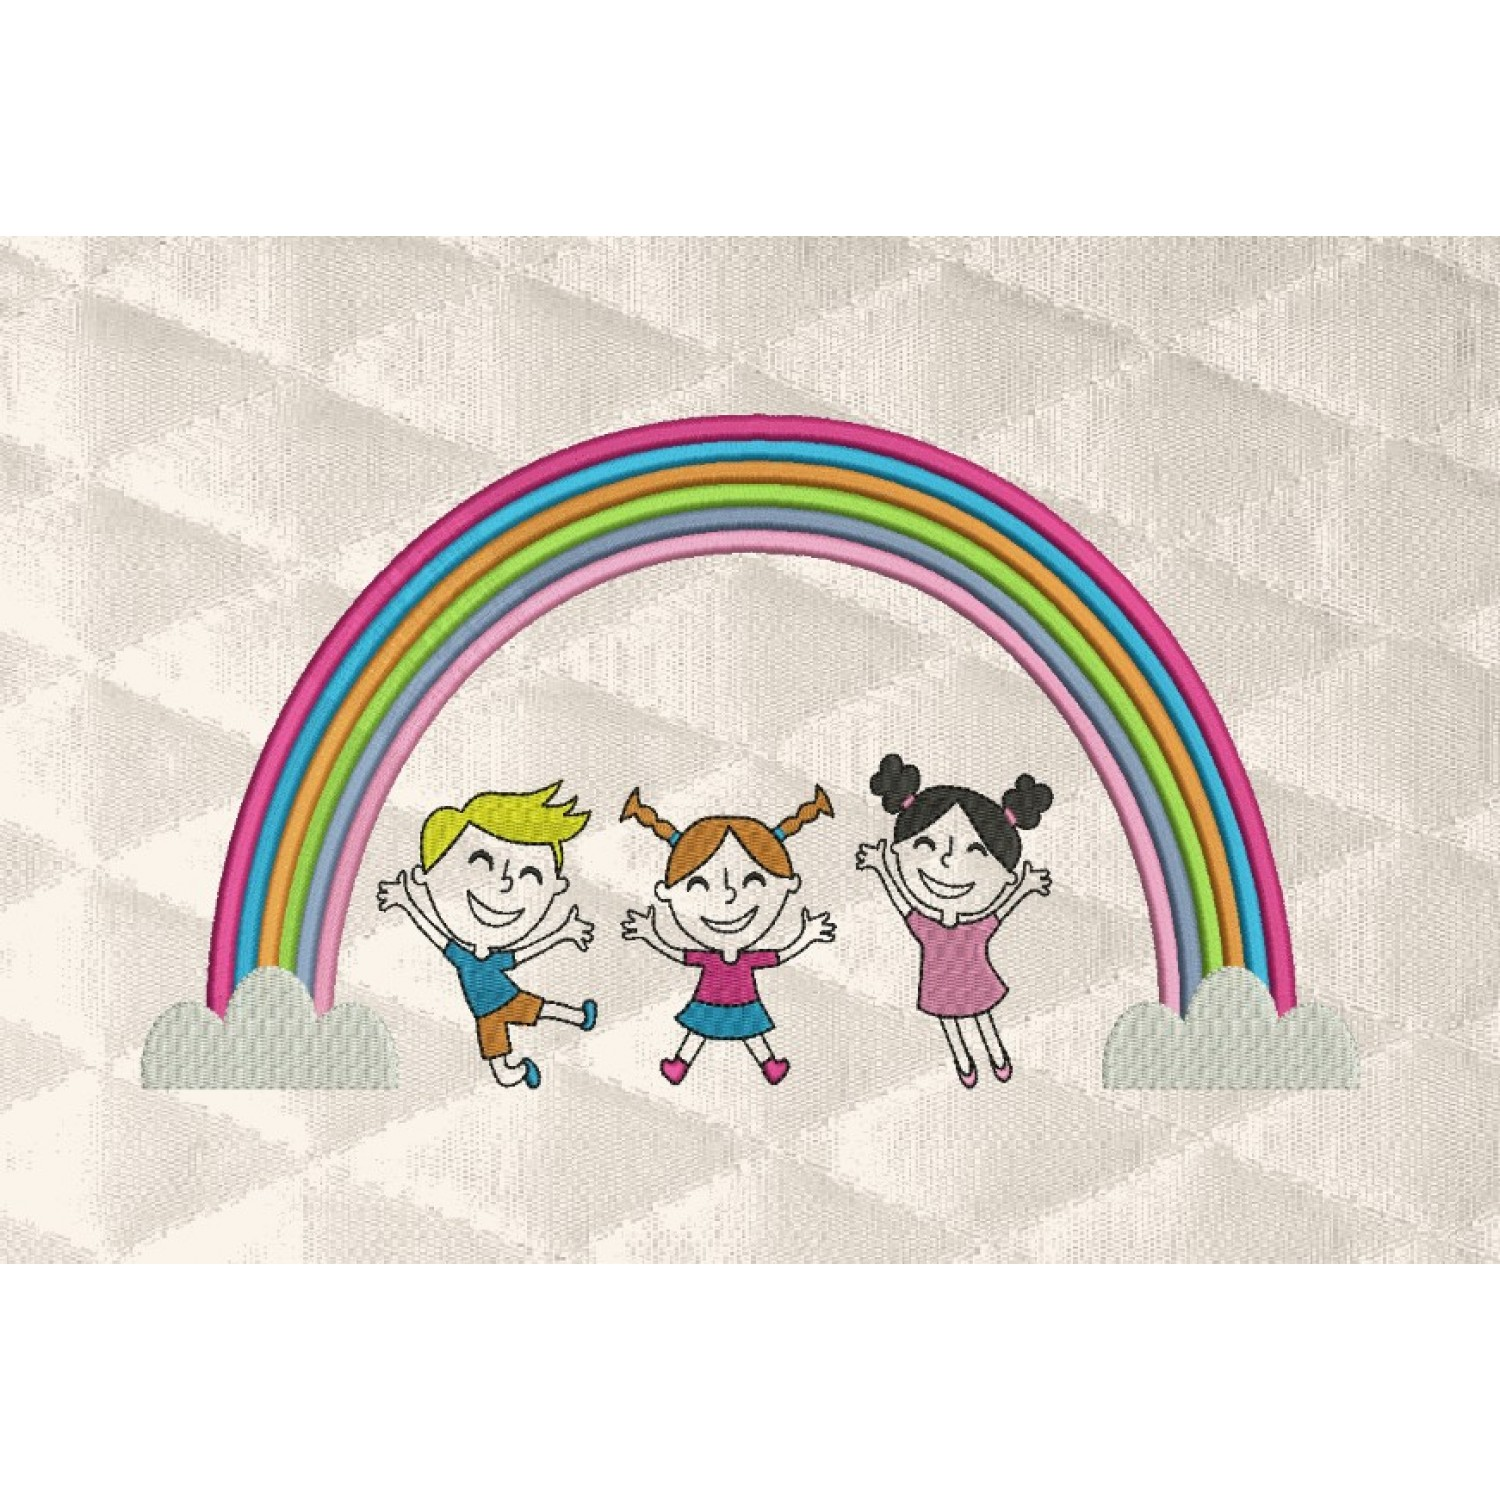 rainbow with children embroidery